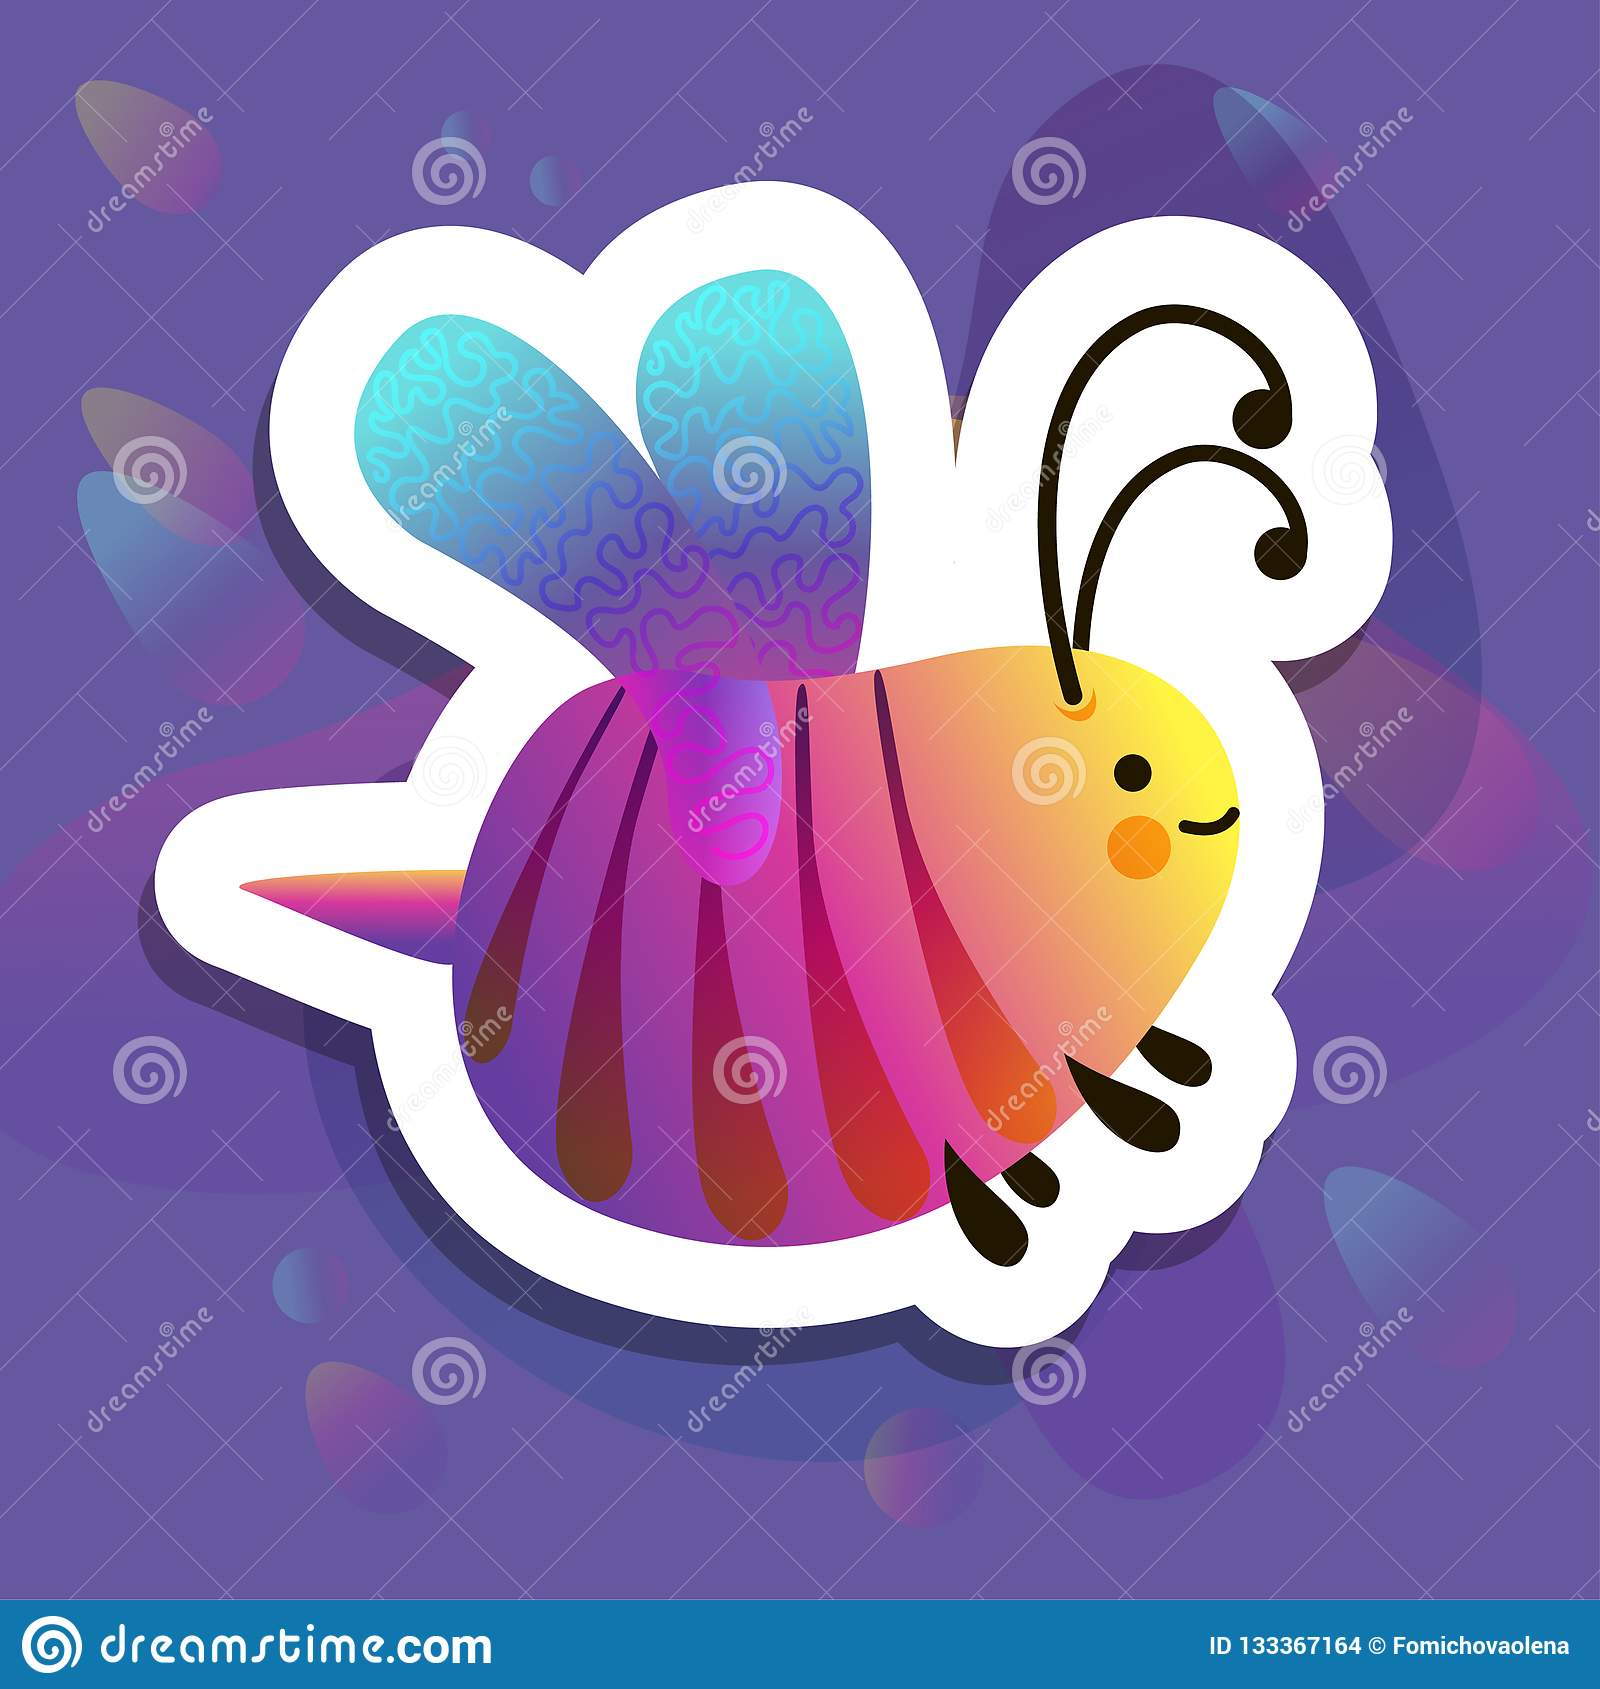 Colorful cartoon bright little bee. Smile and happy insect for kids books. Bug sticker